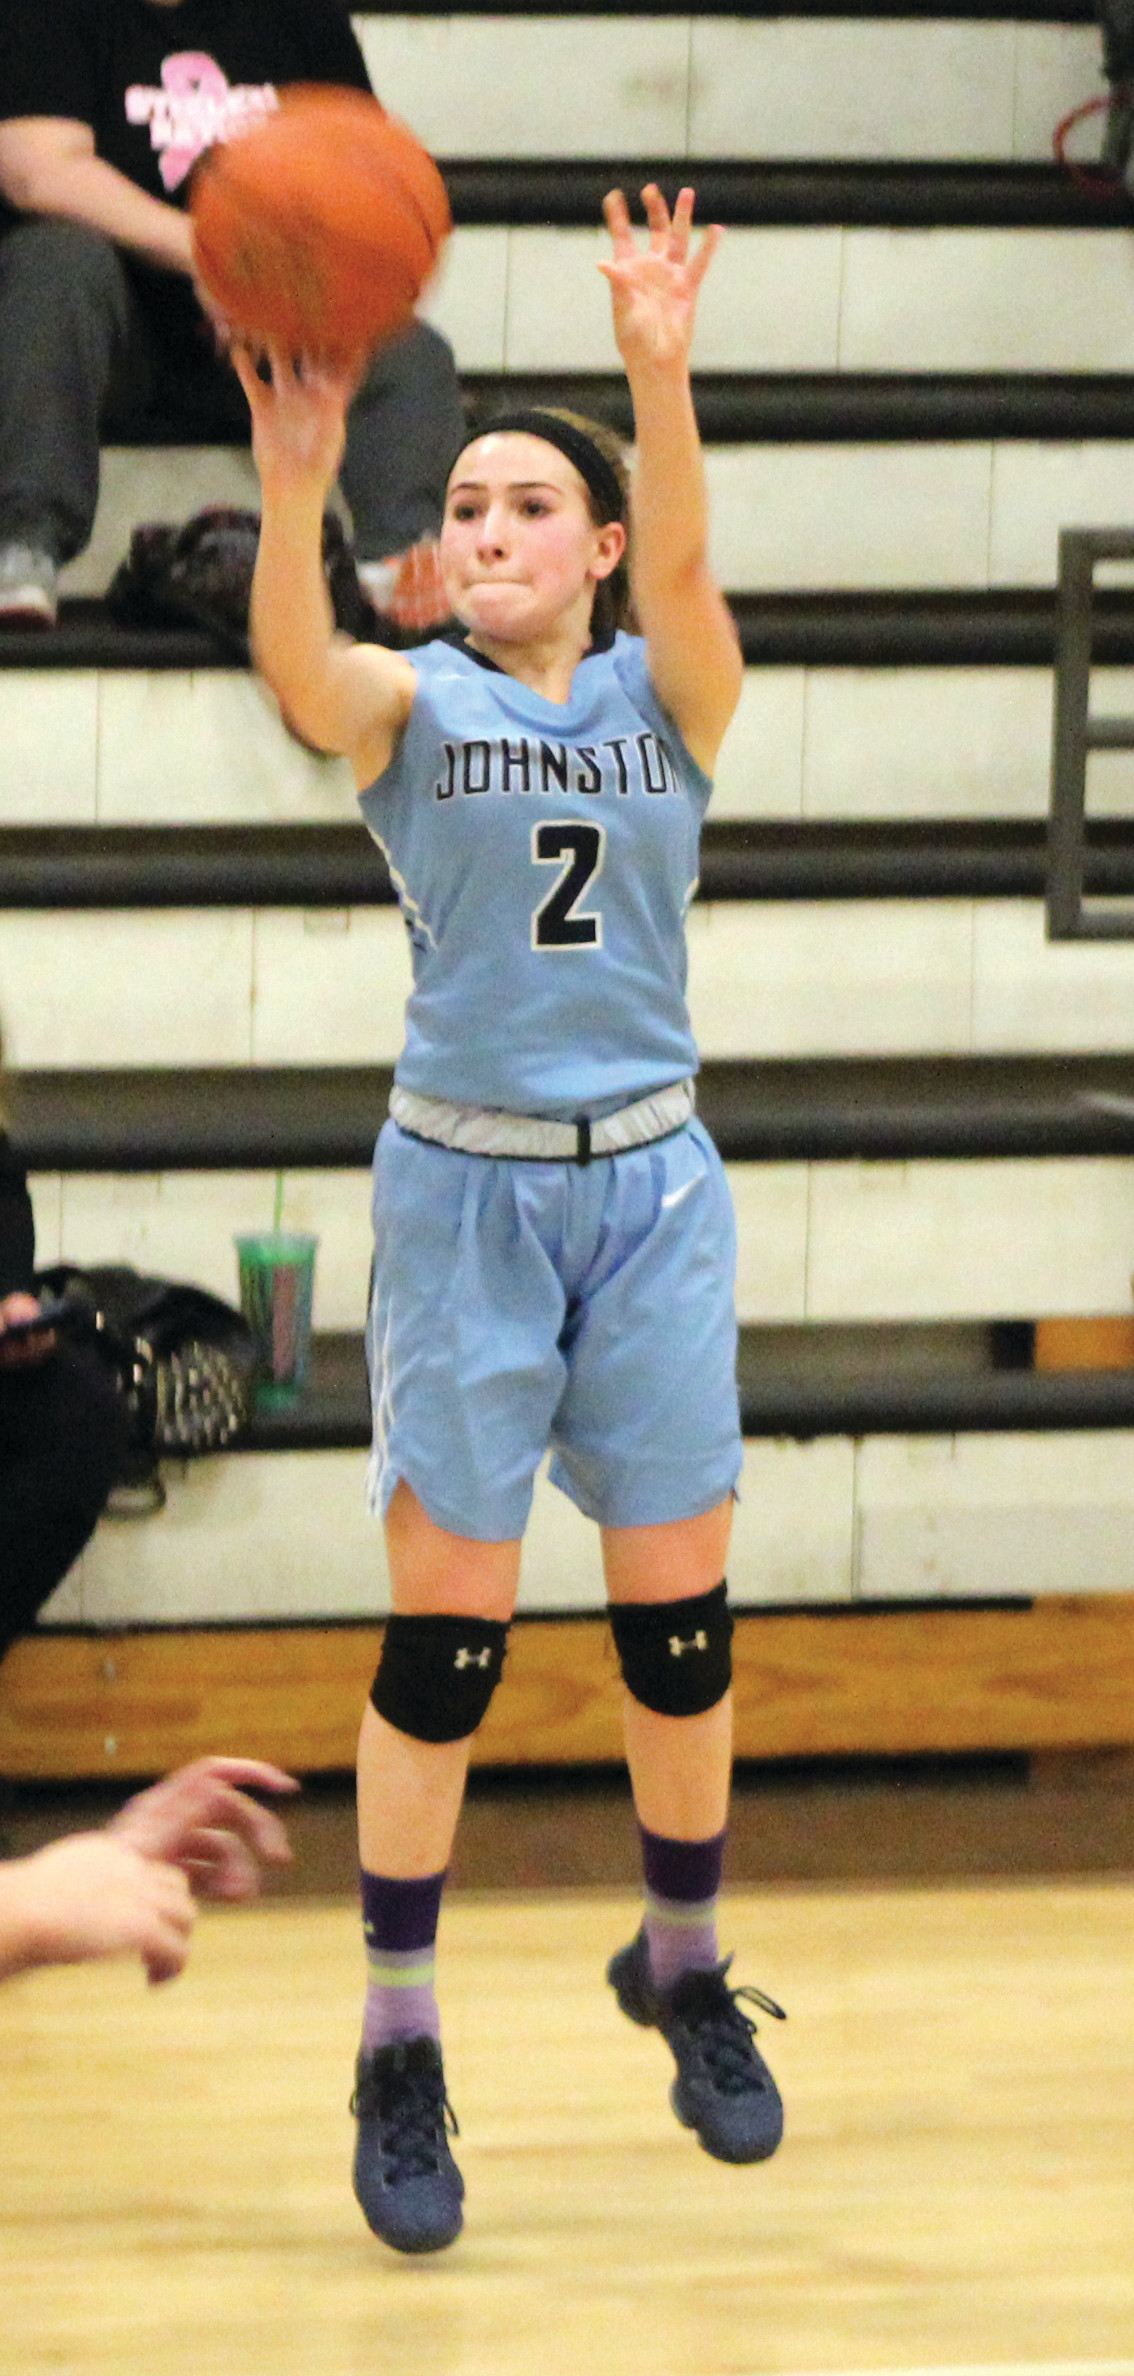 MILESTONE: Jordan Moretti scored her 1,000th point on Friday.